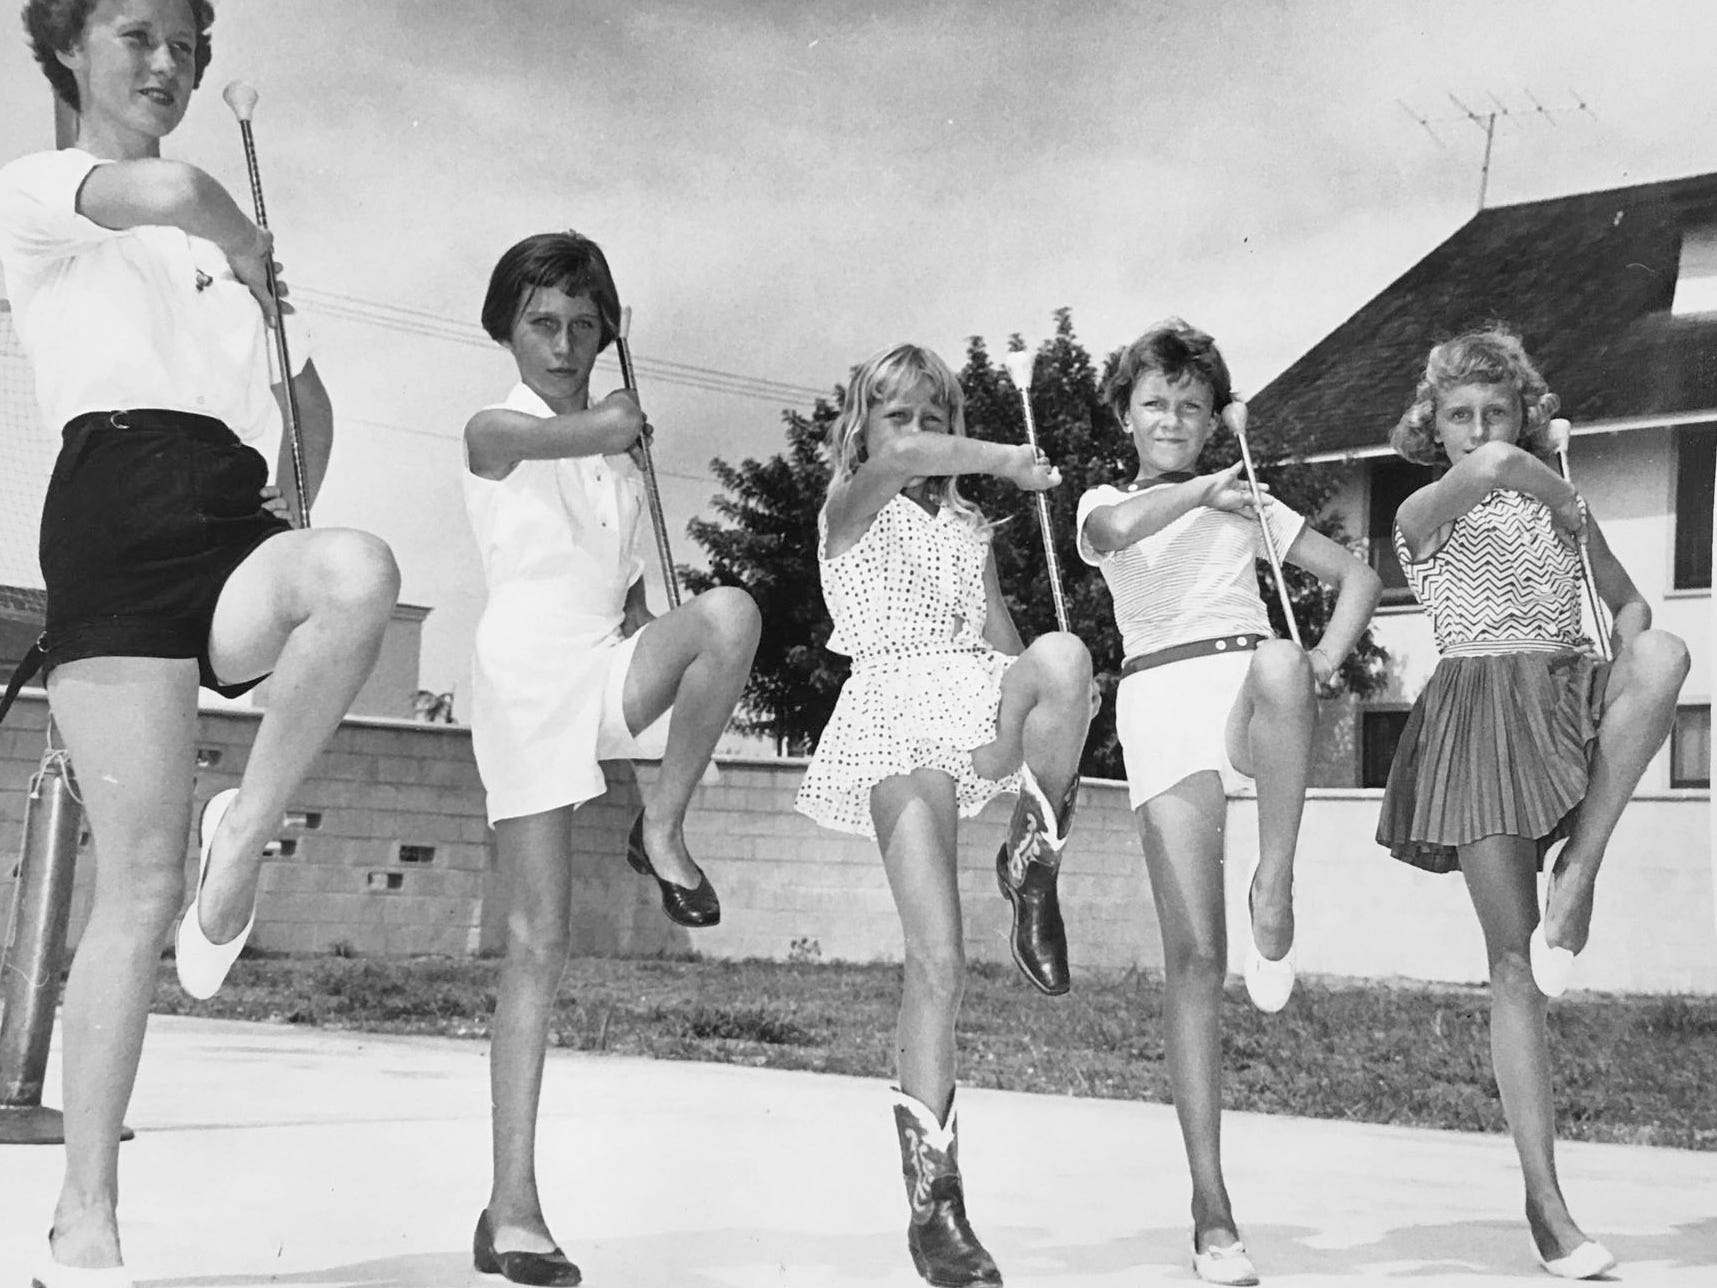 Baton twirling was popular as part of the summer recreation programs in Vero Beach, unknown year.